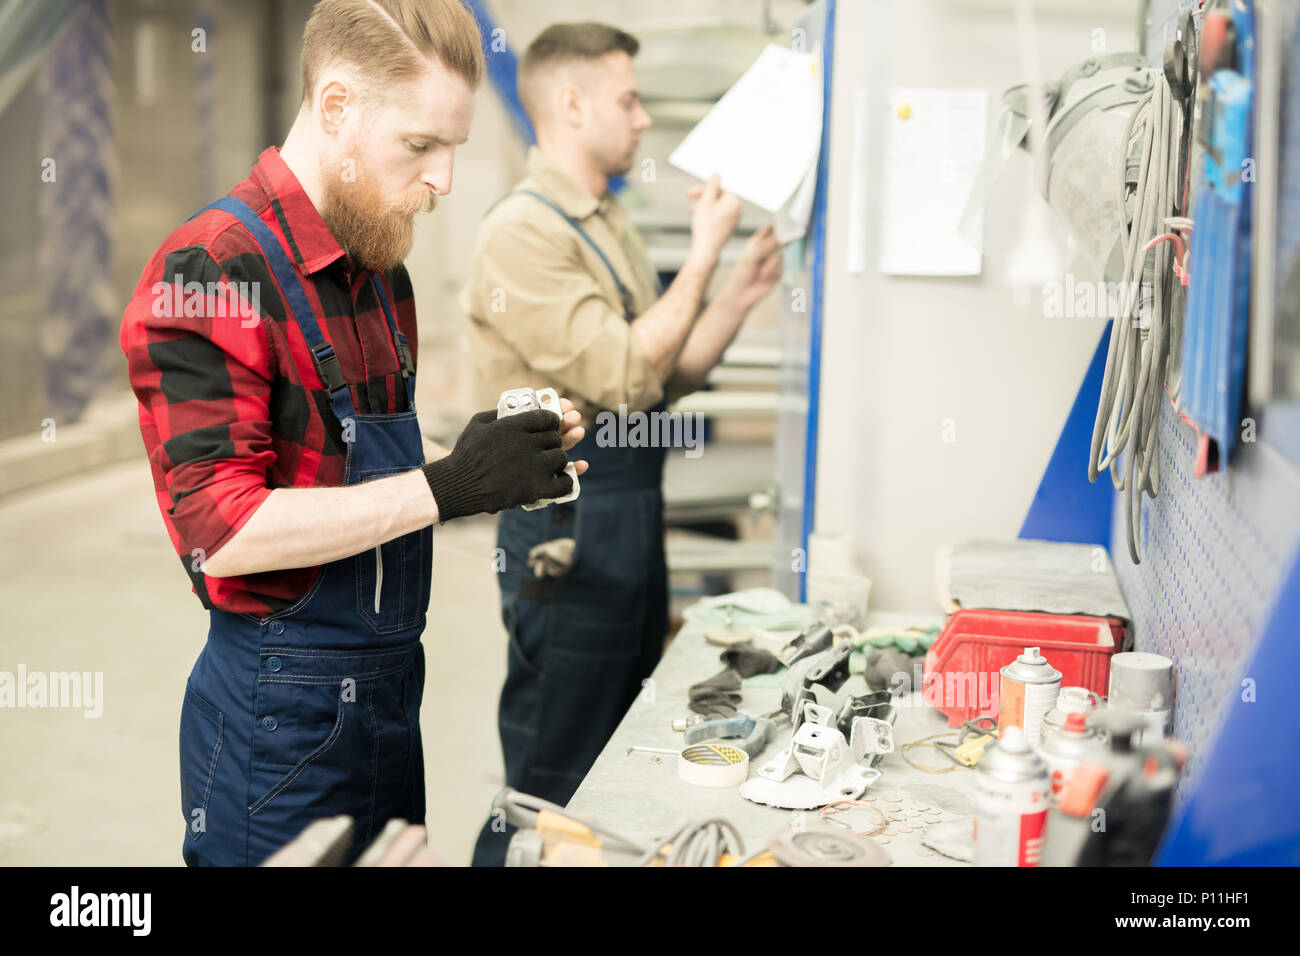 Mechanics Working In Repair Shop - Stock Image